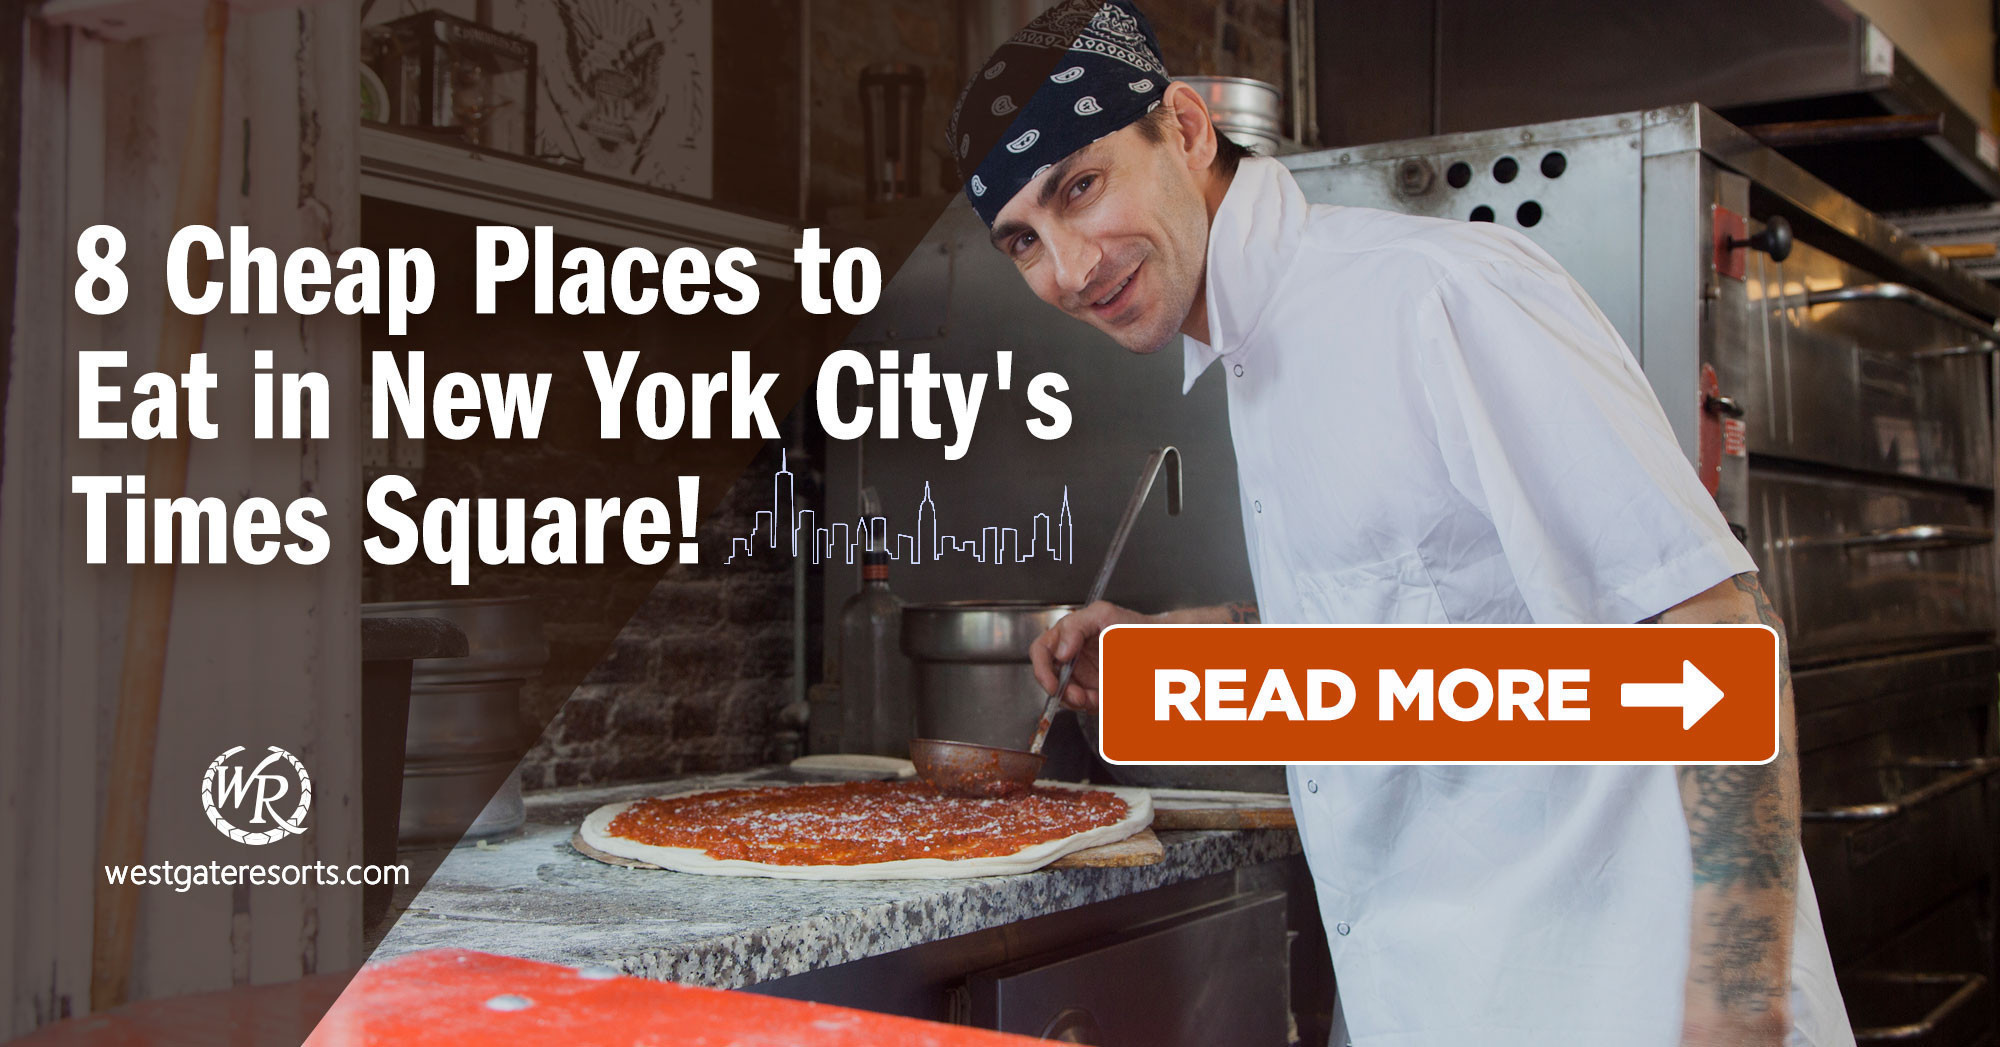 8 Cheap Places to Eat in New York City's Times Square!